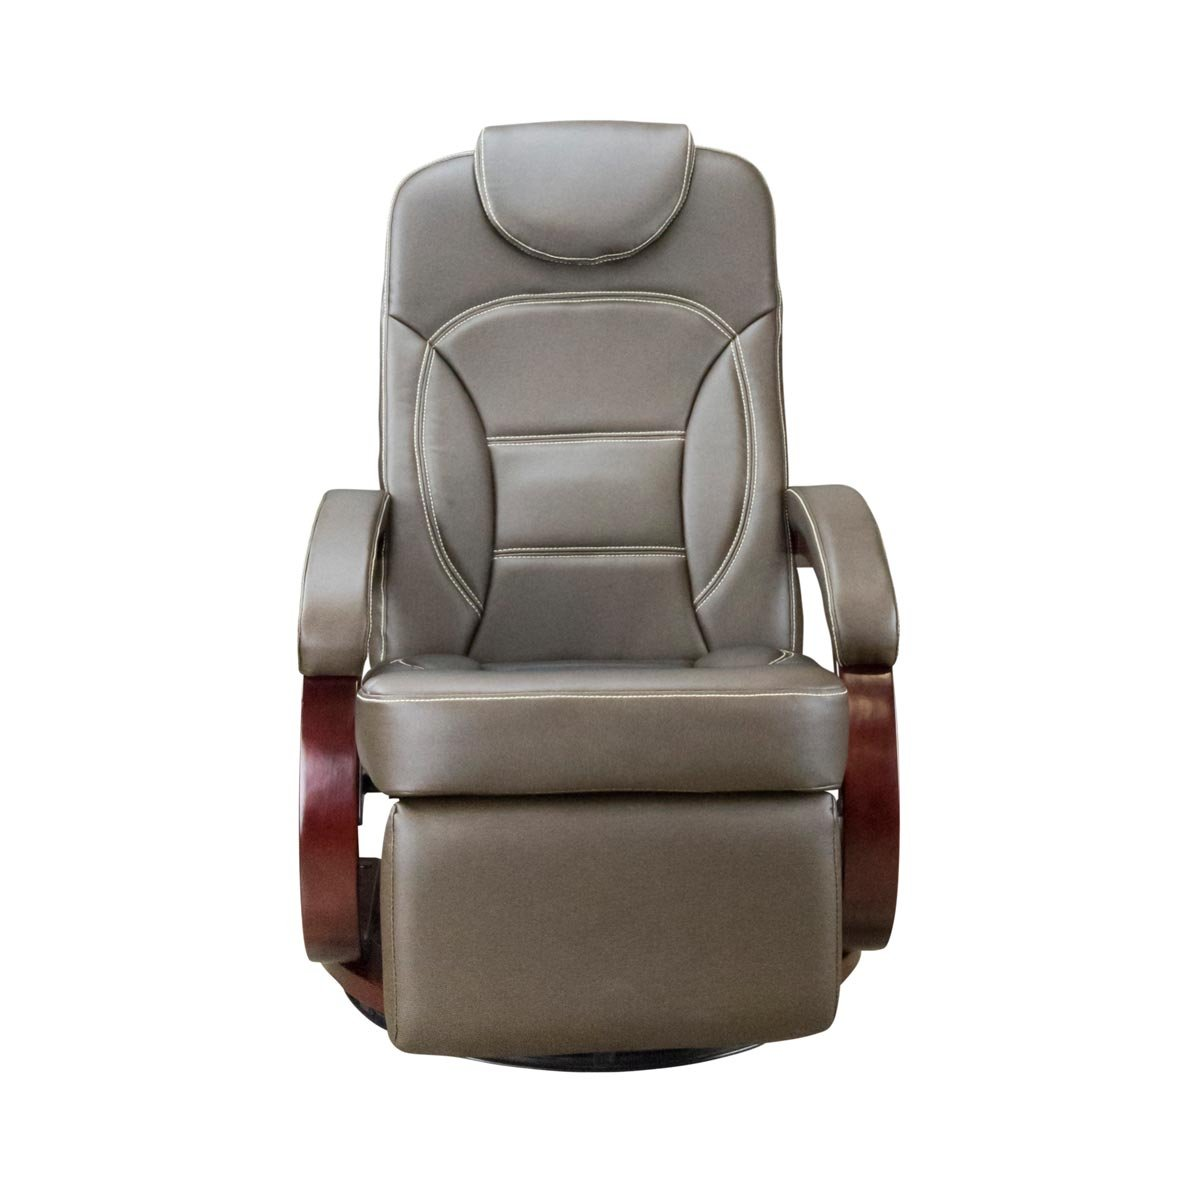 Amazon.com: Thomas Payne 3477222 Brookwood Chestnut Euro Chair: Automotive